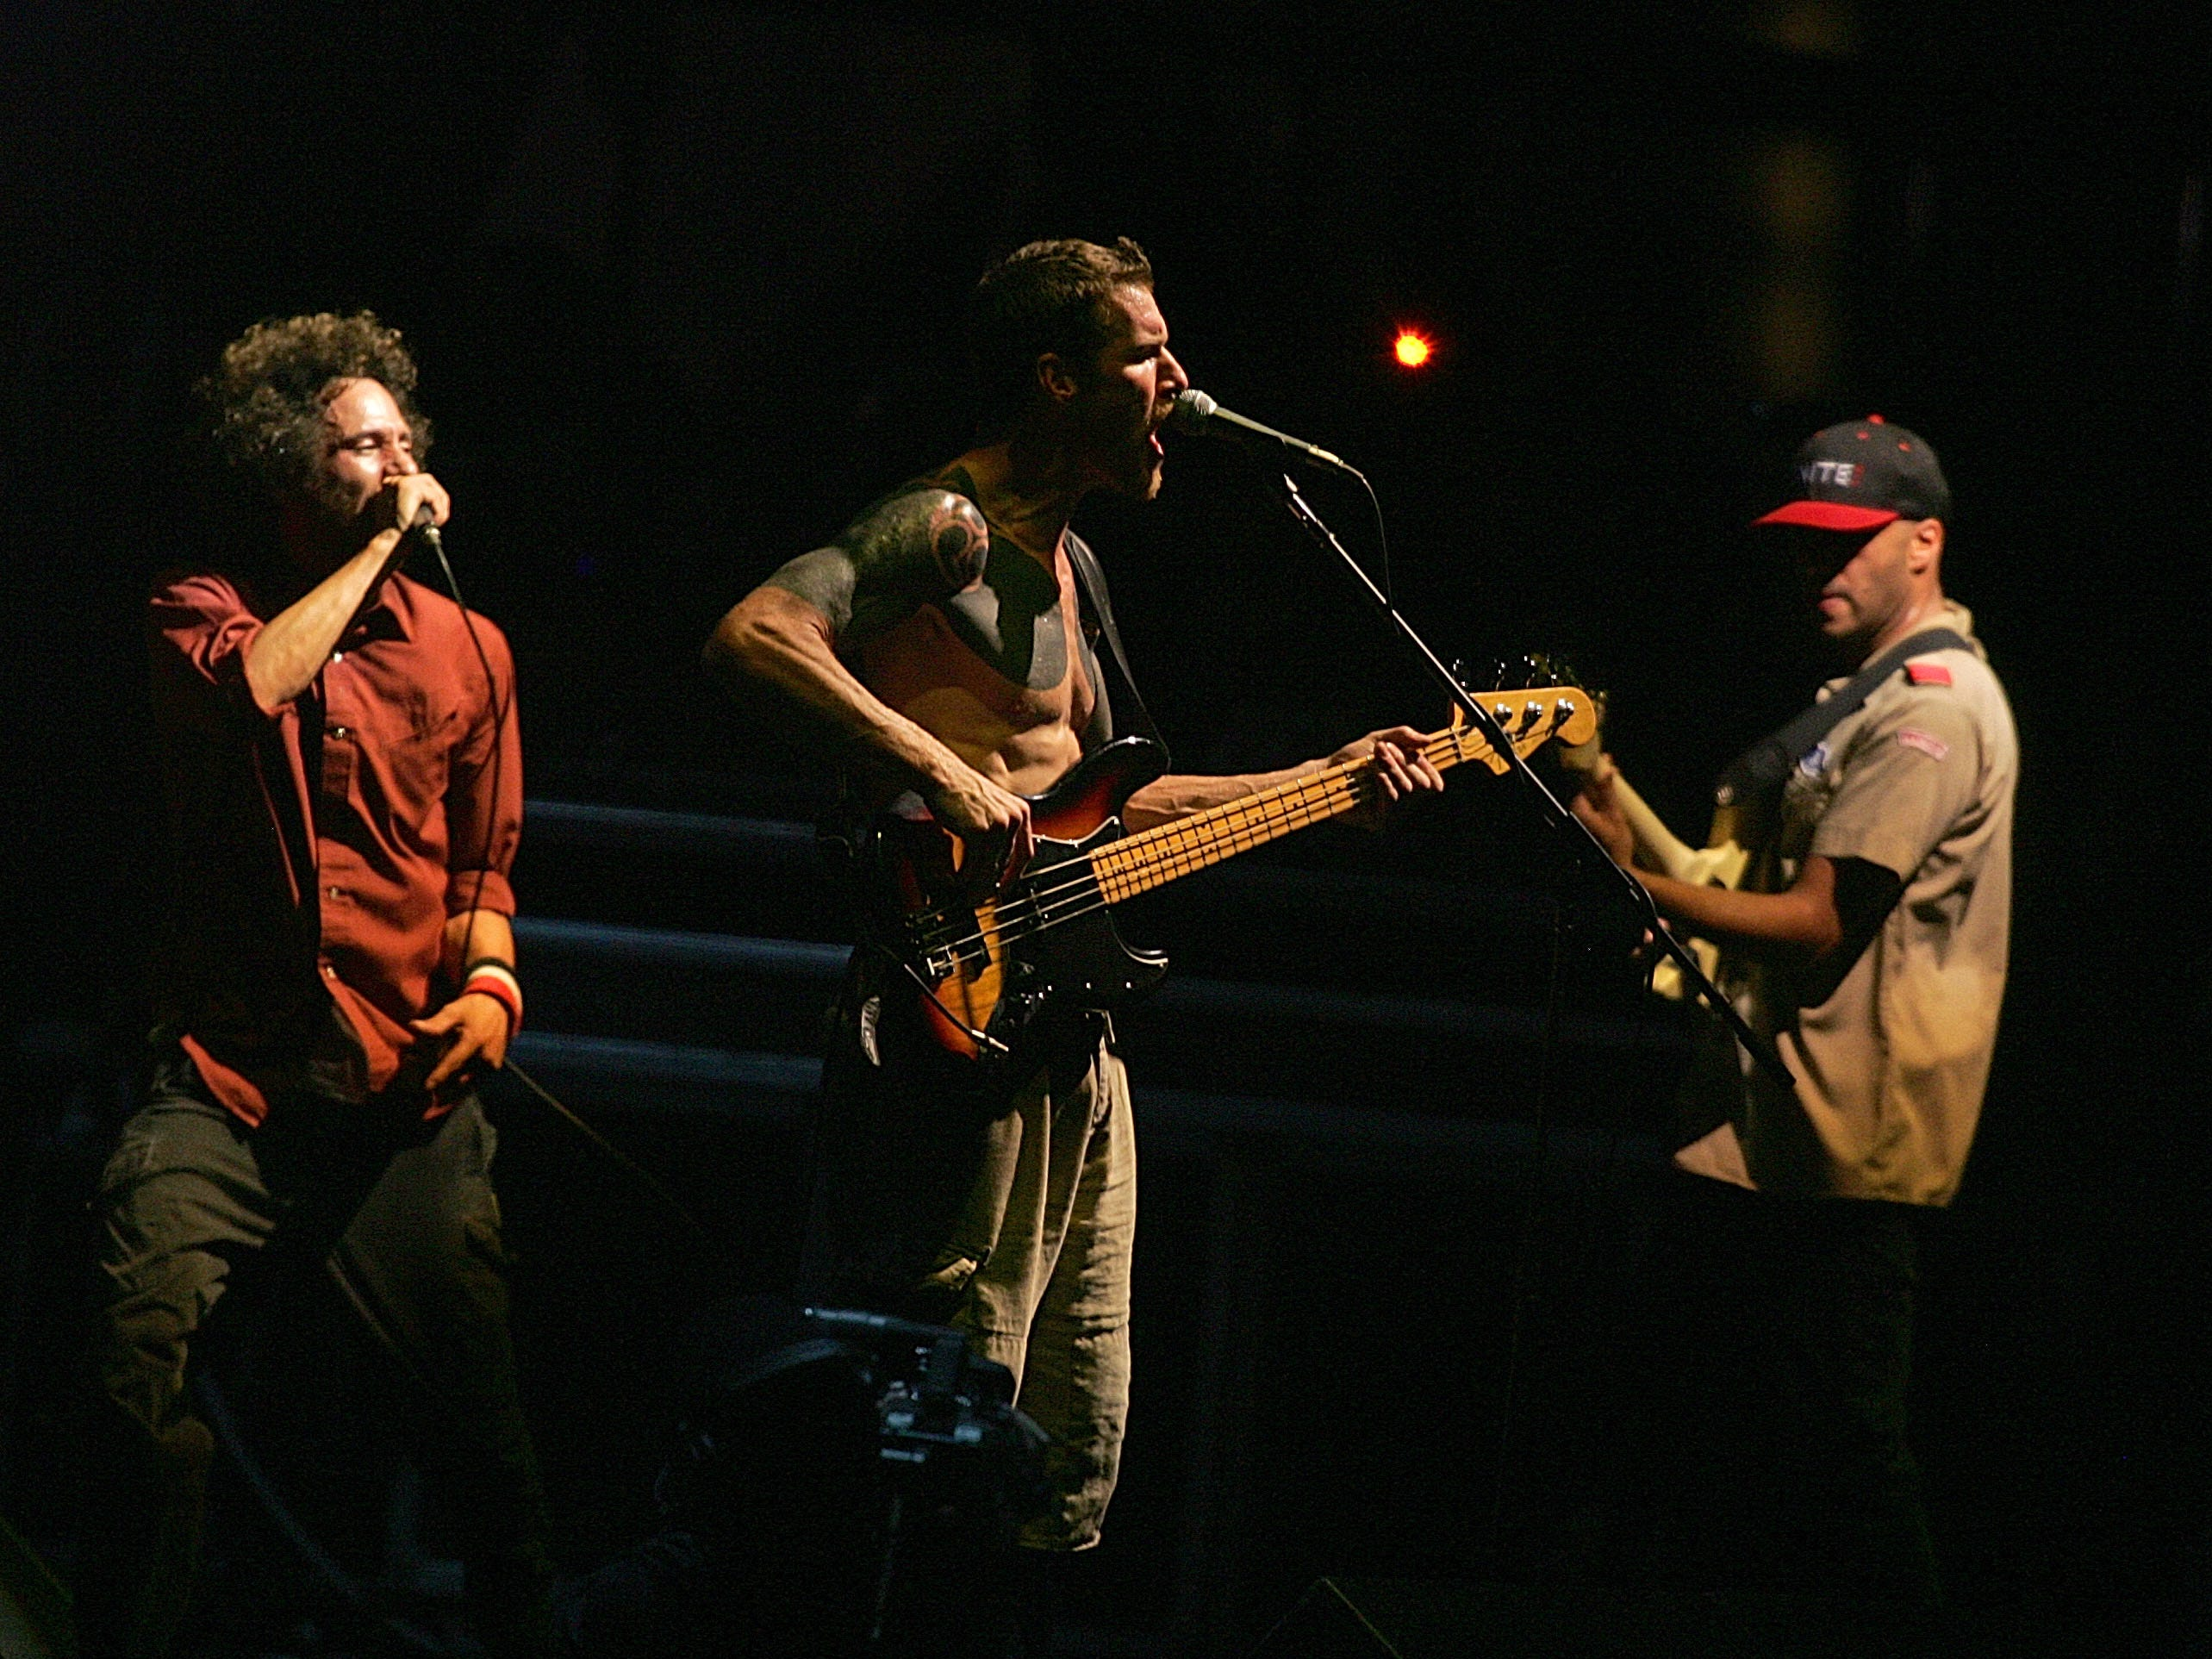 Rage Against the Machine. From left, Zack de la Rocha, Tim Commerford, center and Tom Morello of the musical group perform at the Coachella Valley Music and Arts Festival in Indio, California, April 29, 2007.